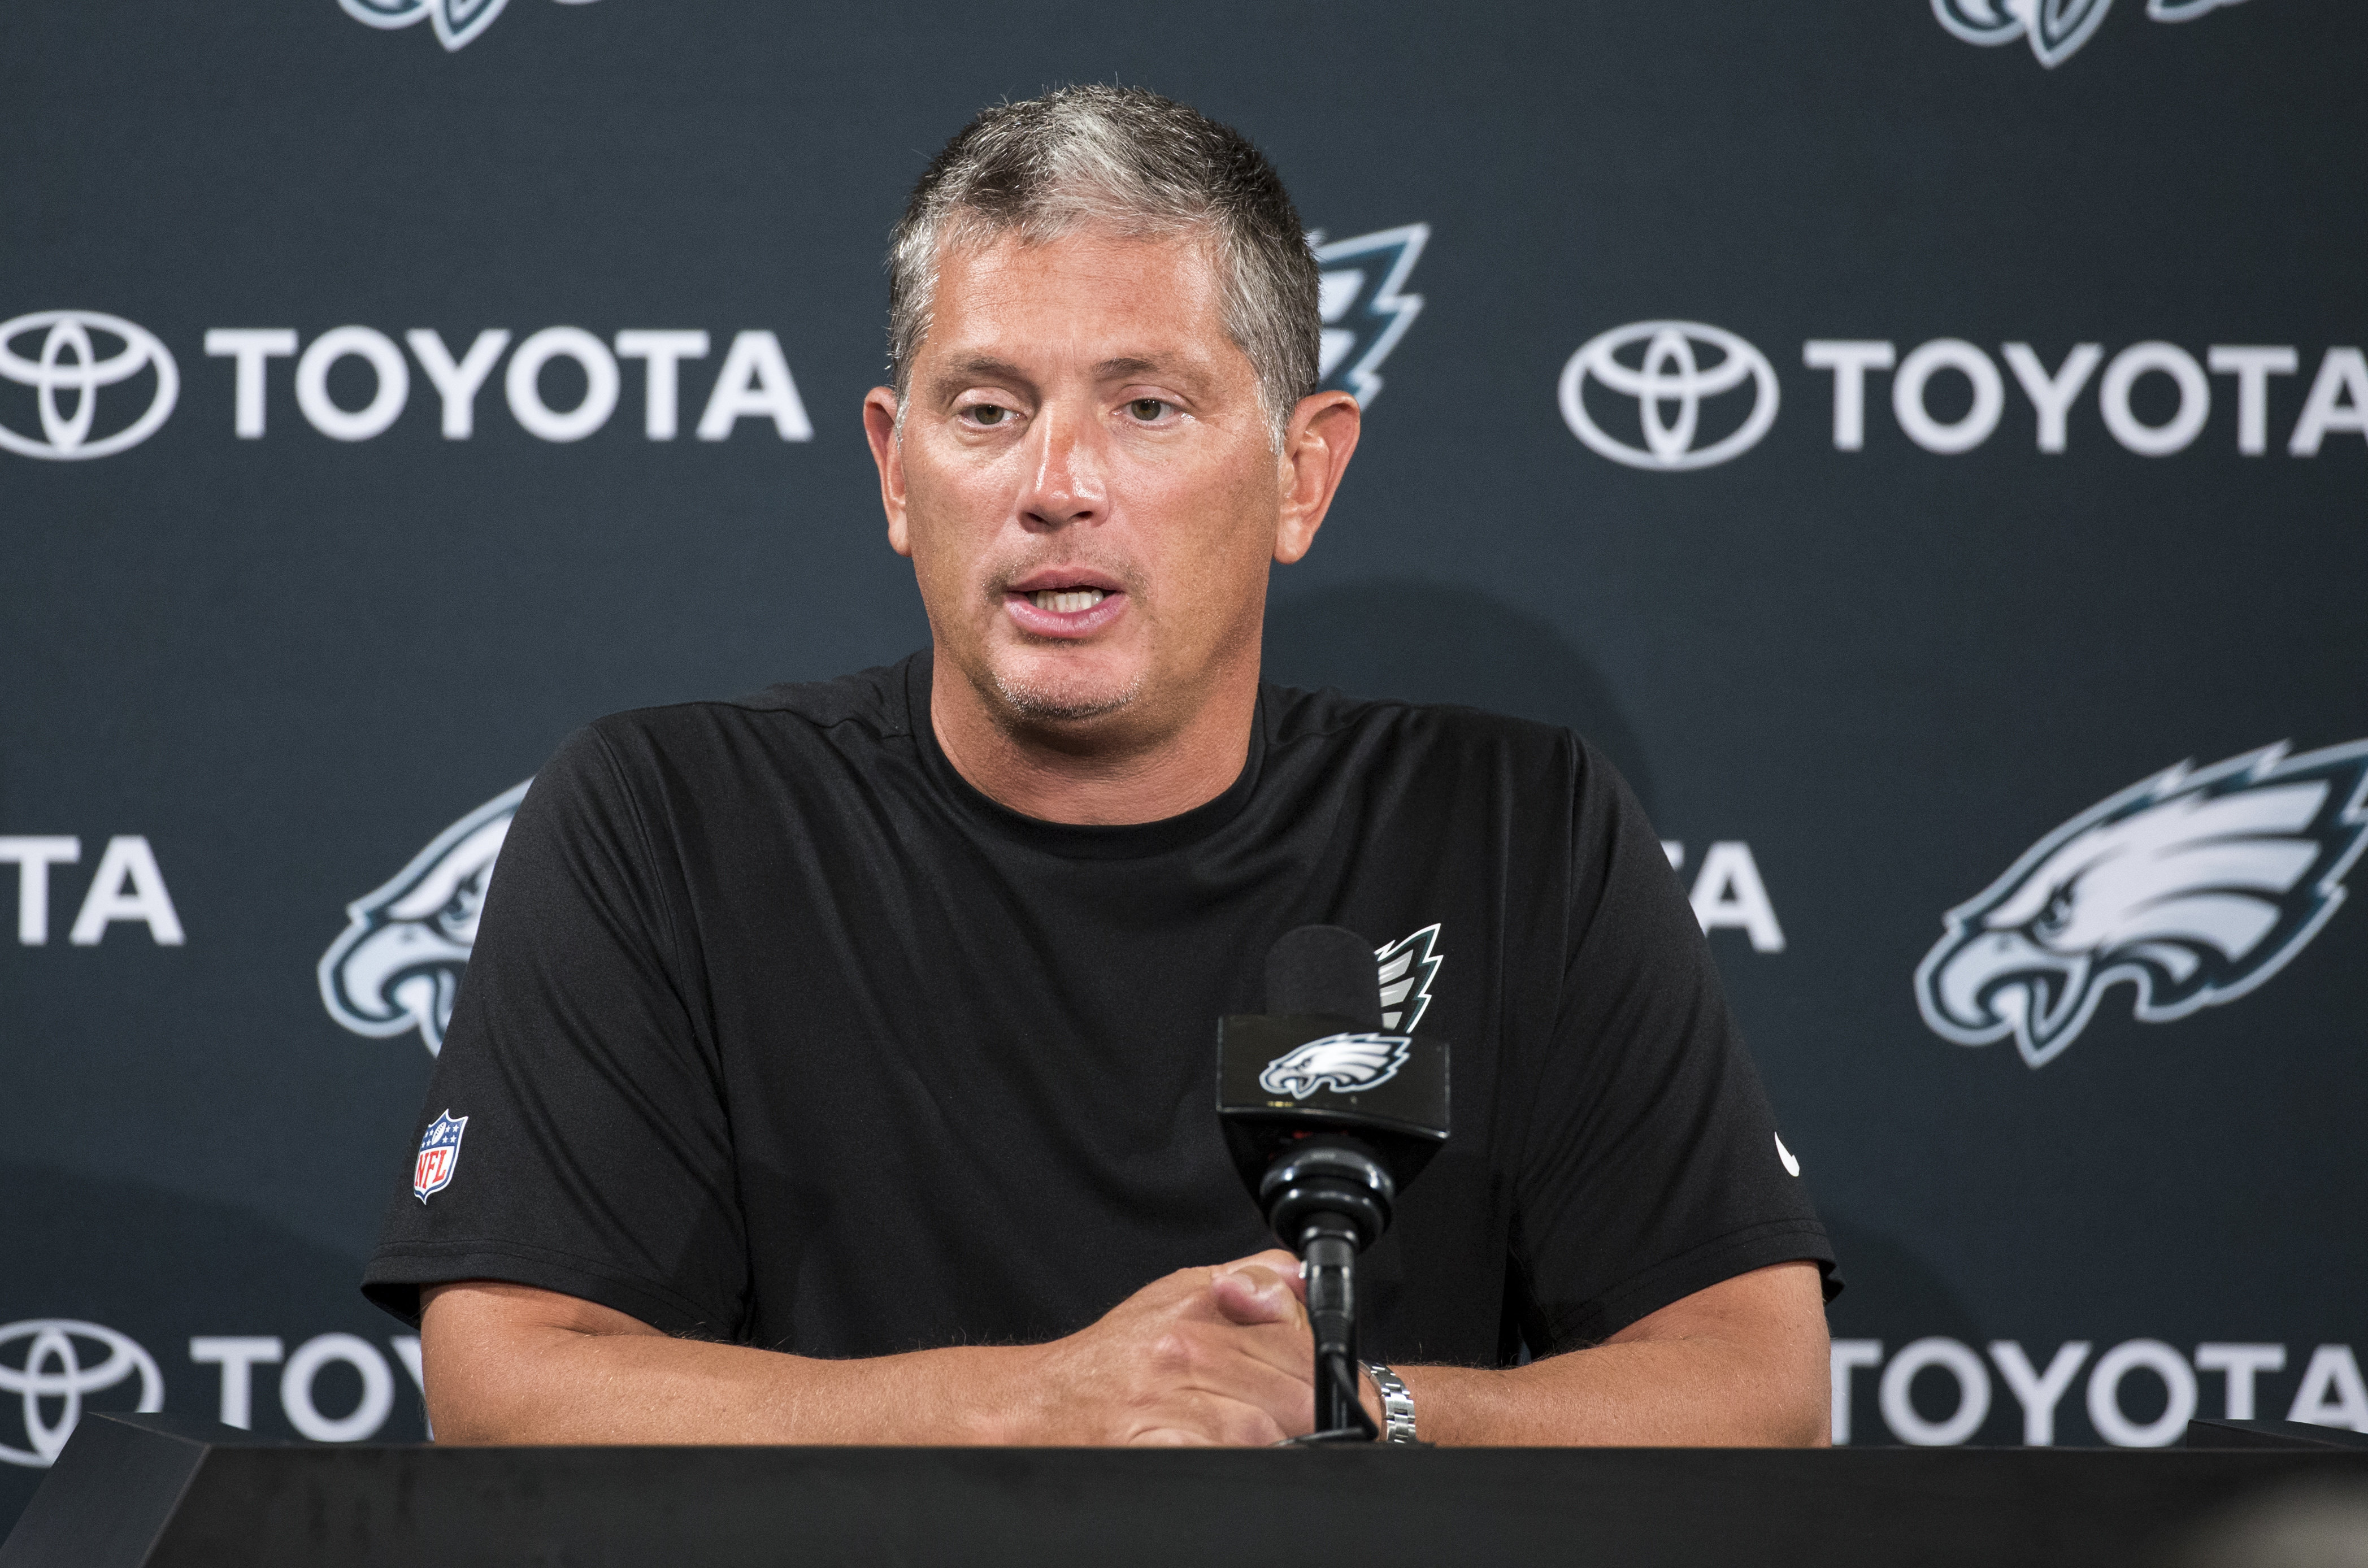 Here's the reason the Giants ultimately hired Pat Shurmur instead of Eagles' Jim Schwartz as head coach